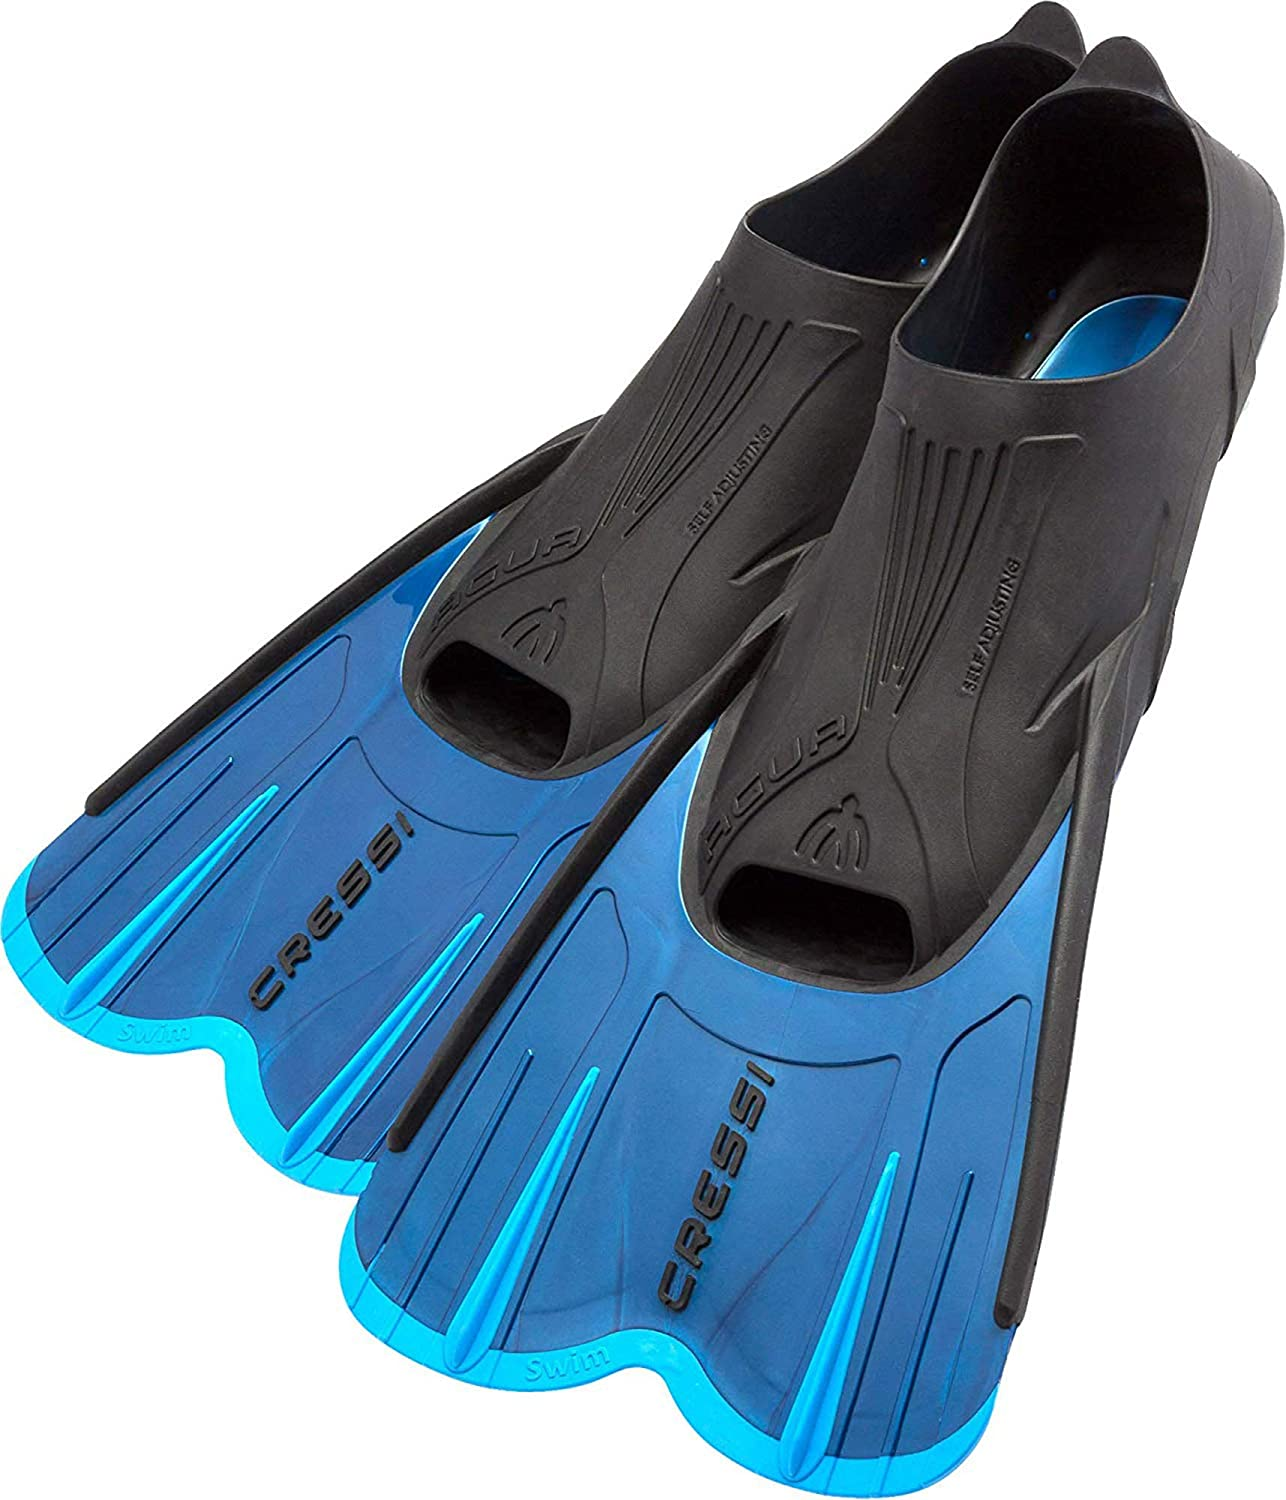 Cressi Adult Short Light Swim Fins with Self-Adjustable Comfortable Full Foot Pocket Made in Italy Perfect for Traveling Agua Short